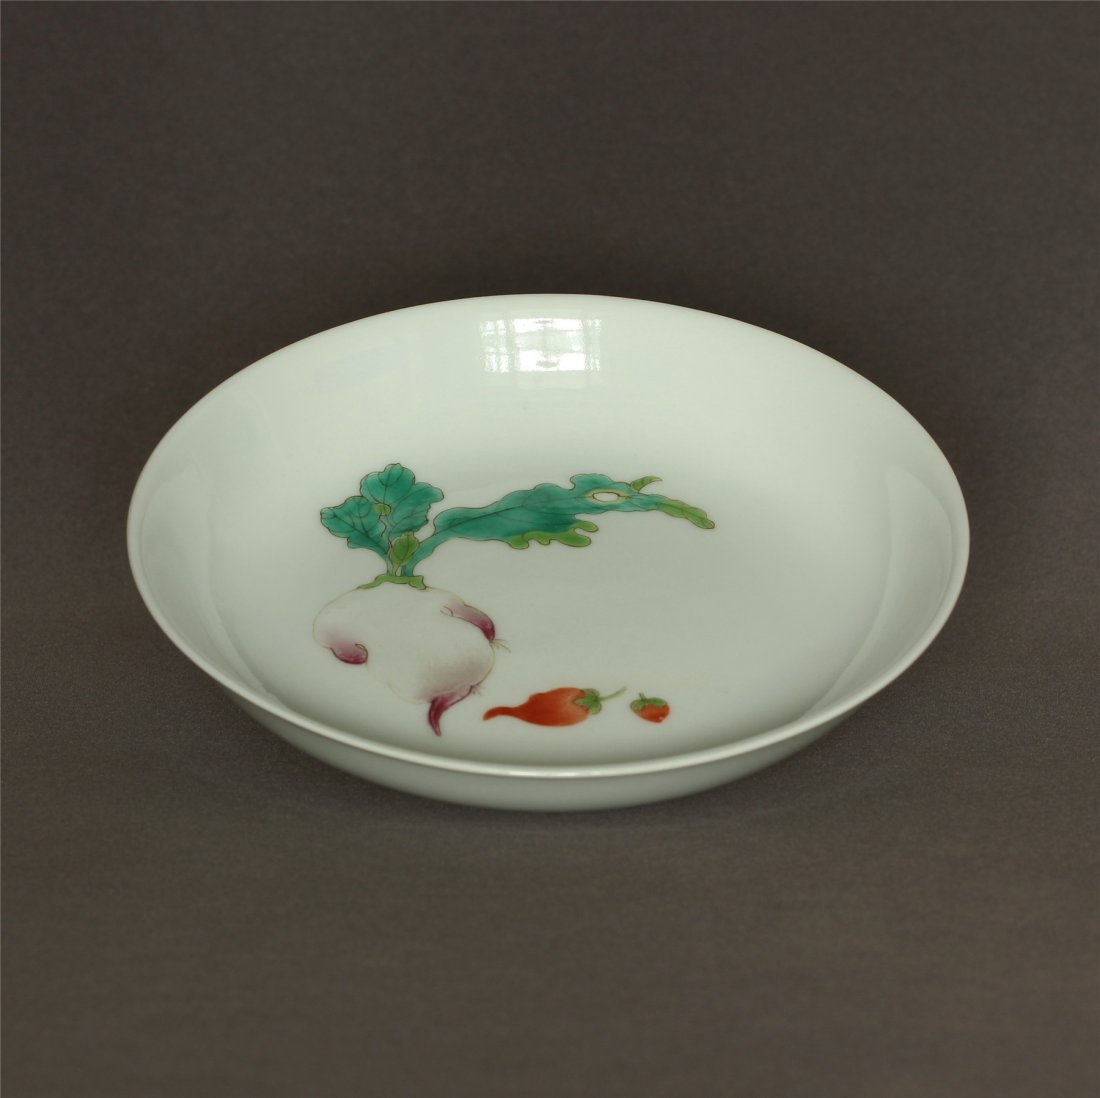 Famille rose porcelain plate of Qing Dynasty XuanTong - 6